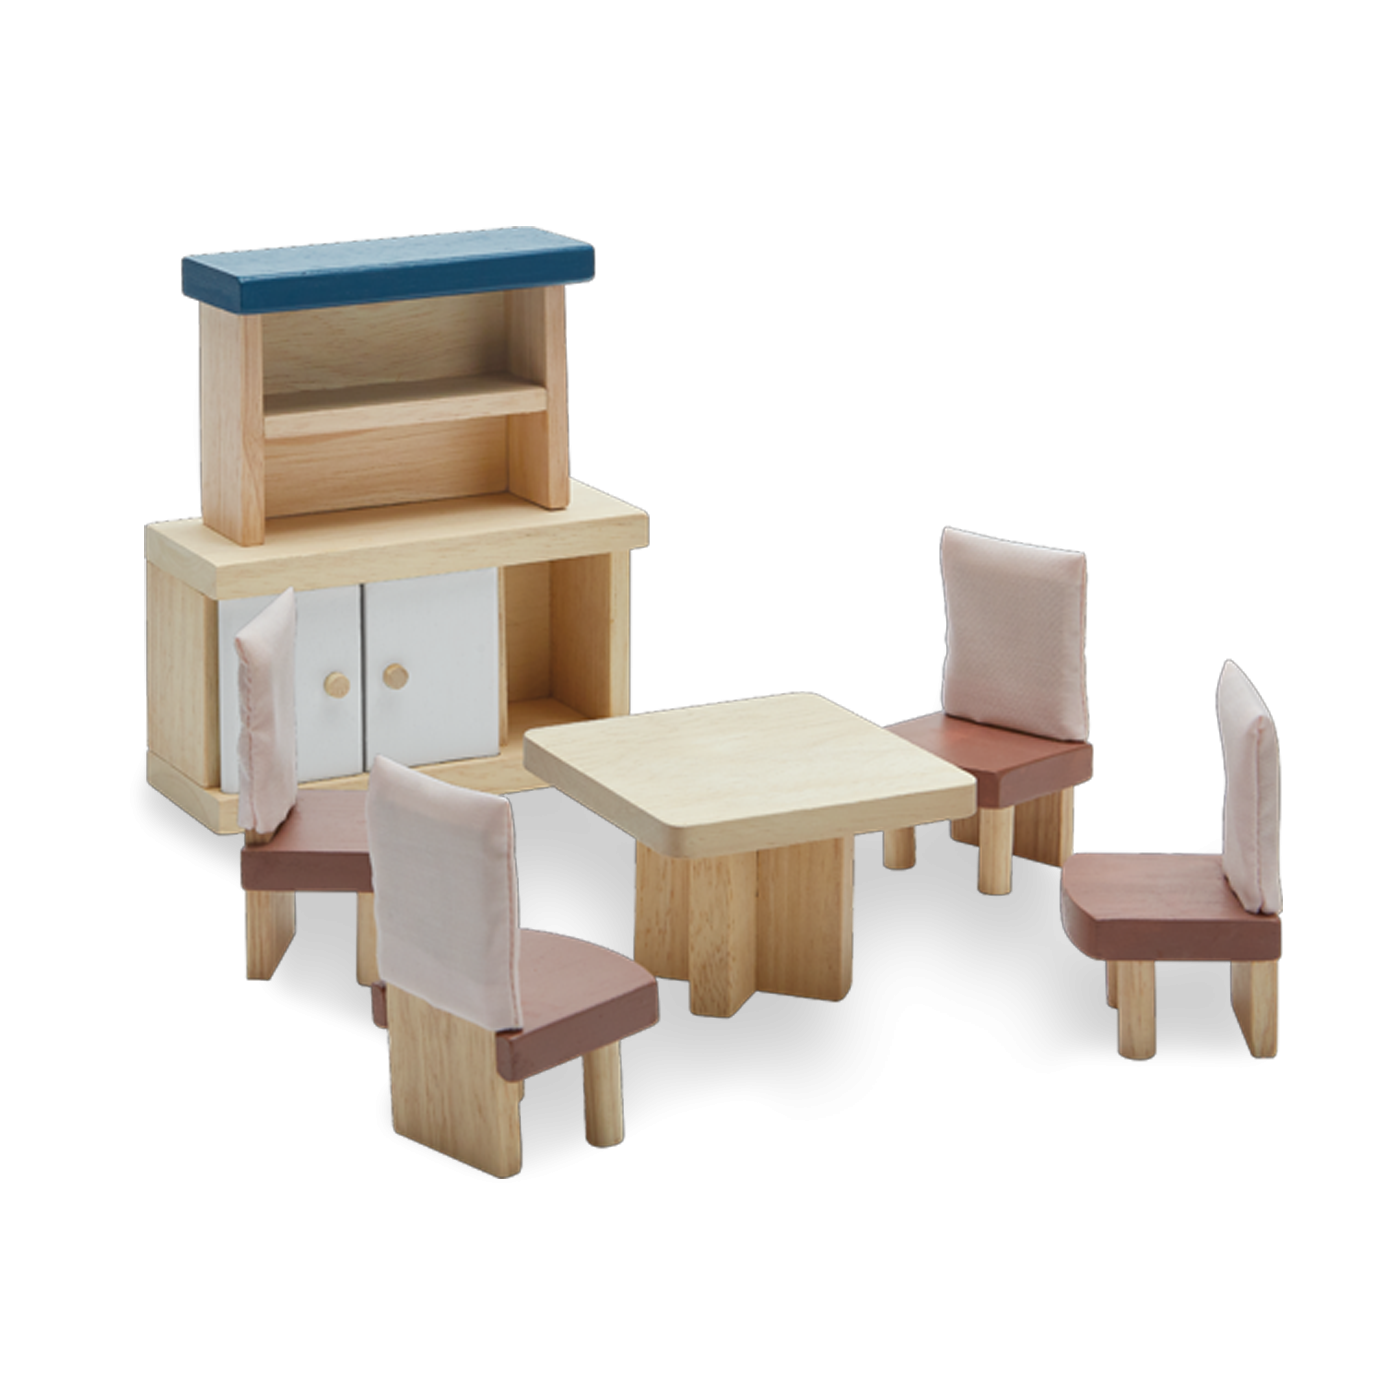 7354_PlanToys_DiningRoom_-_Orchard_Pretend_Play_3yrs_Emotion_Language_and_Communications_Imagination_Social_Coordination_Creative_Wooden_toys_Education_toys_Safety_Toys_Non-toxic_0.png